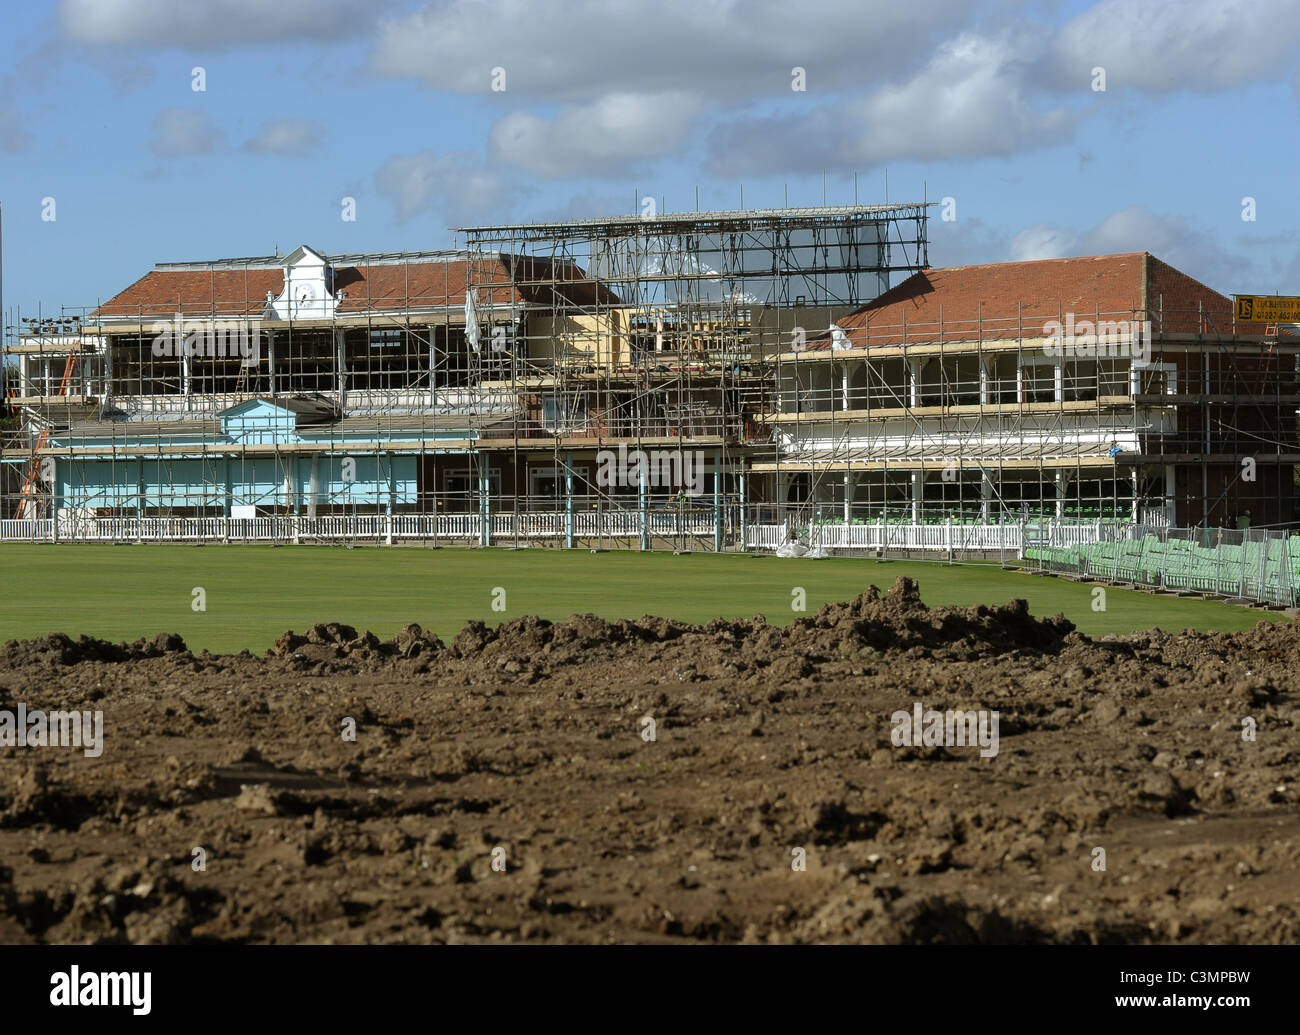 The new earth banks on the Old Dover Road sid eof the ground as work continues a pace on the pavilion at the St - Stock Image